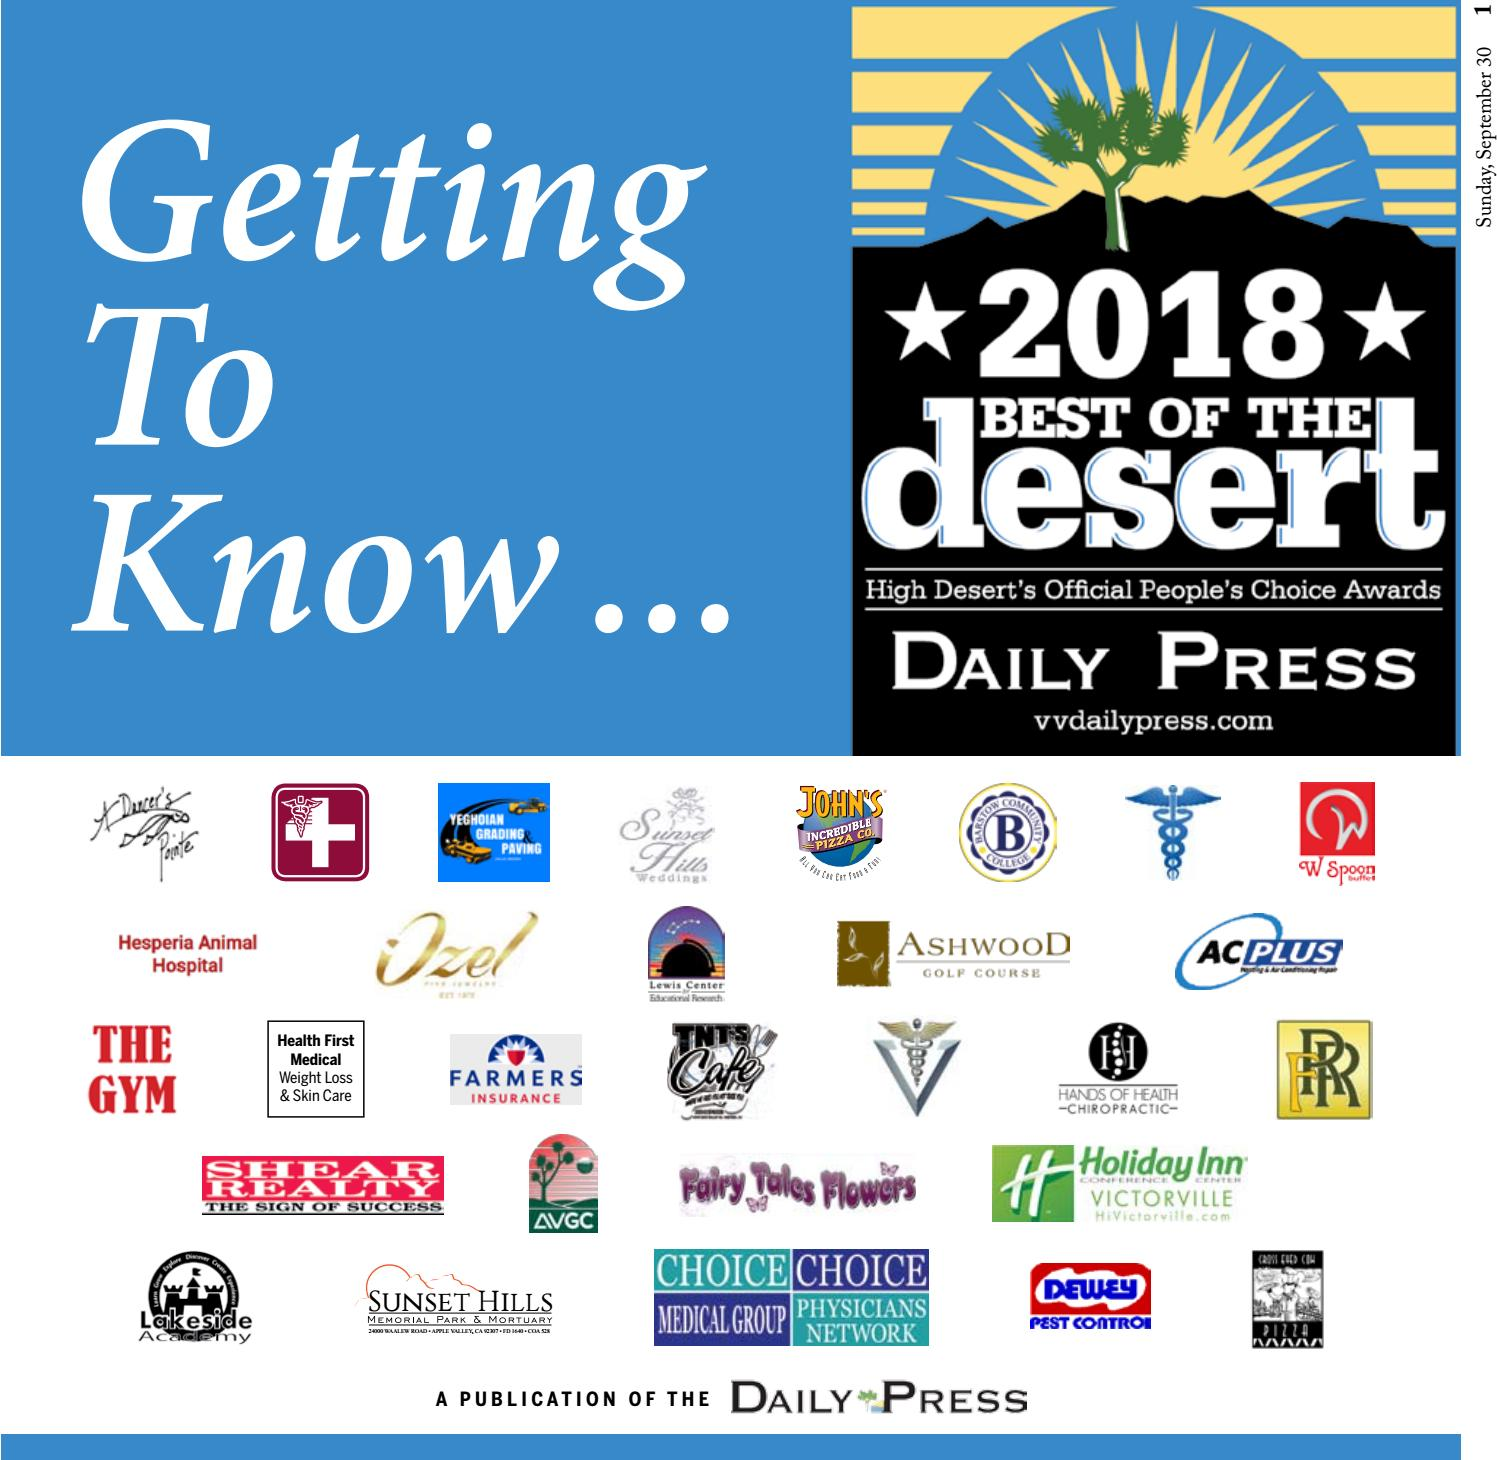 Getting to Know    by High Desert Media Group - issuu